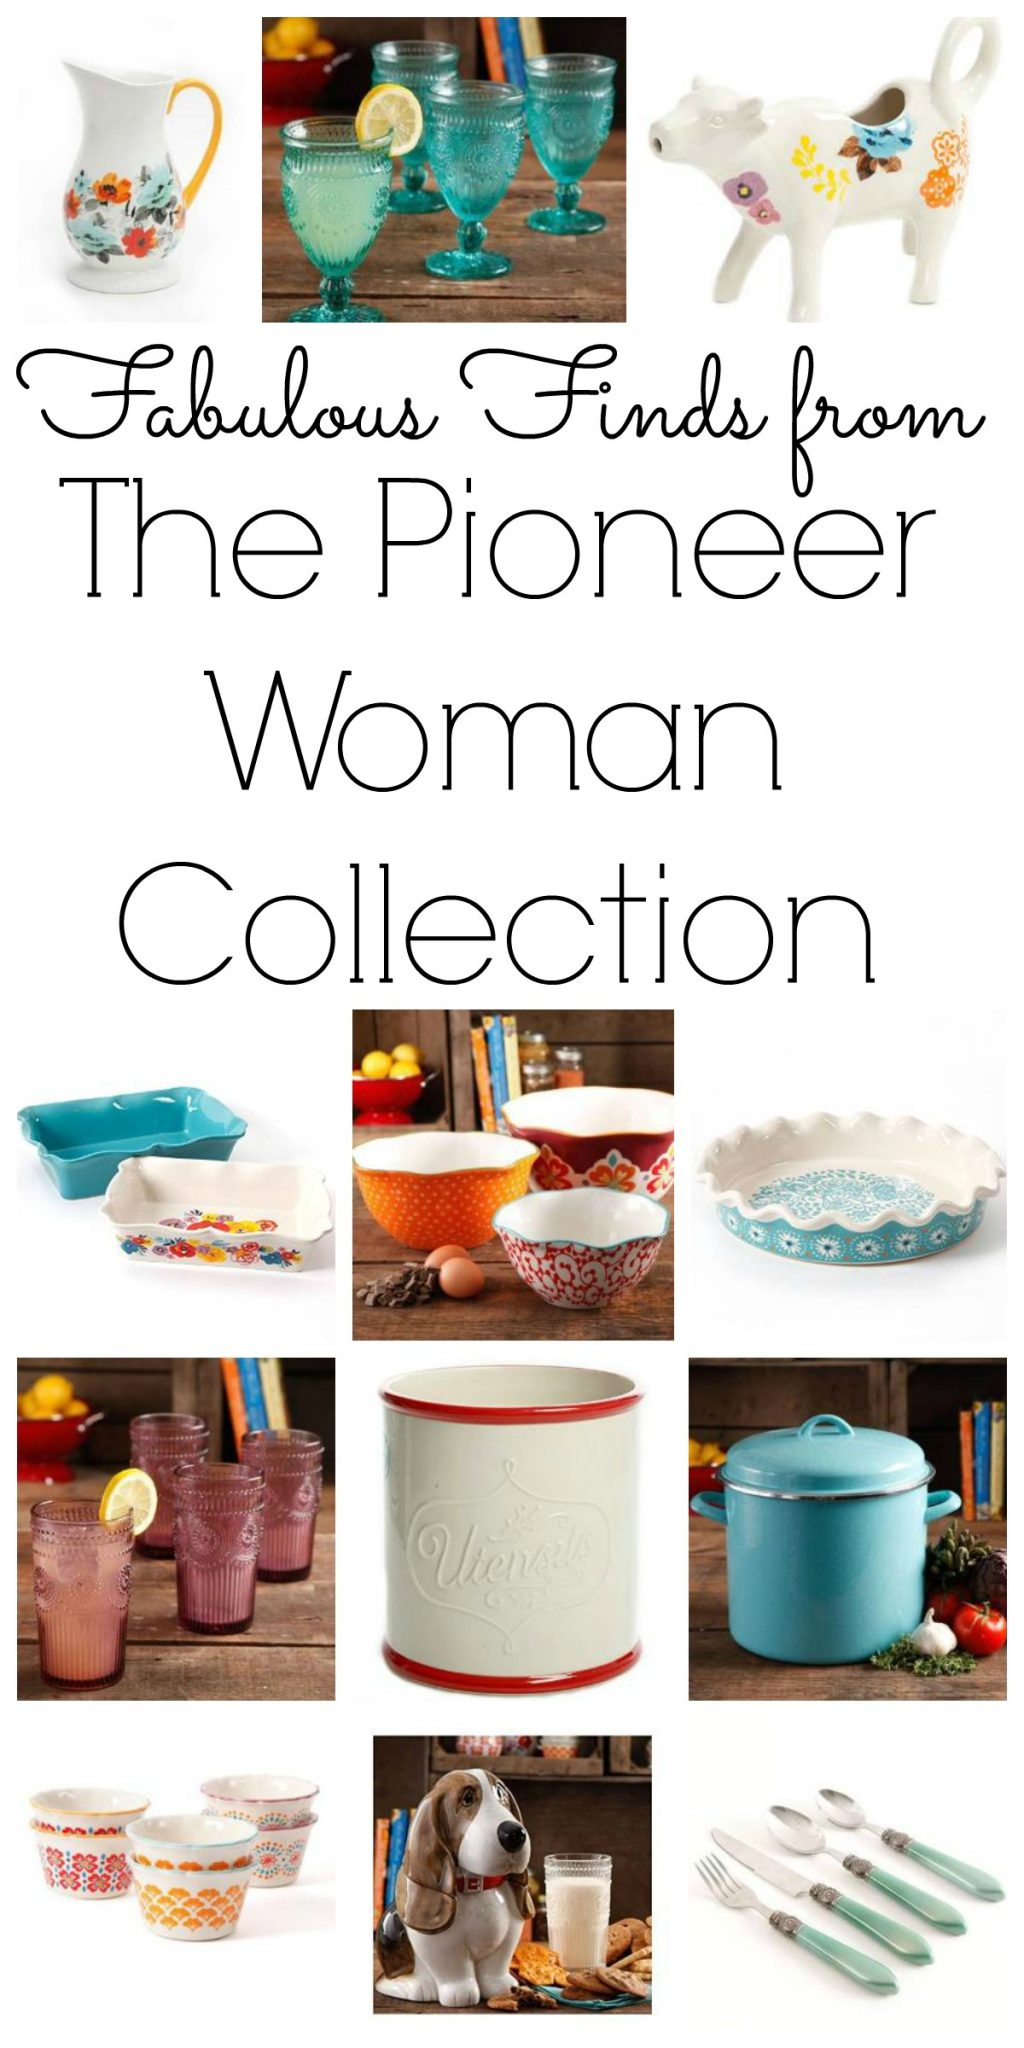 Pick up these Pioneer Woman kitchen essentials from her product line! I love this line and want it ALL!!